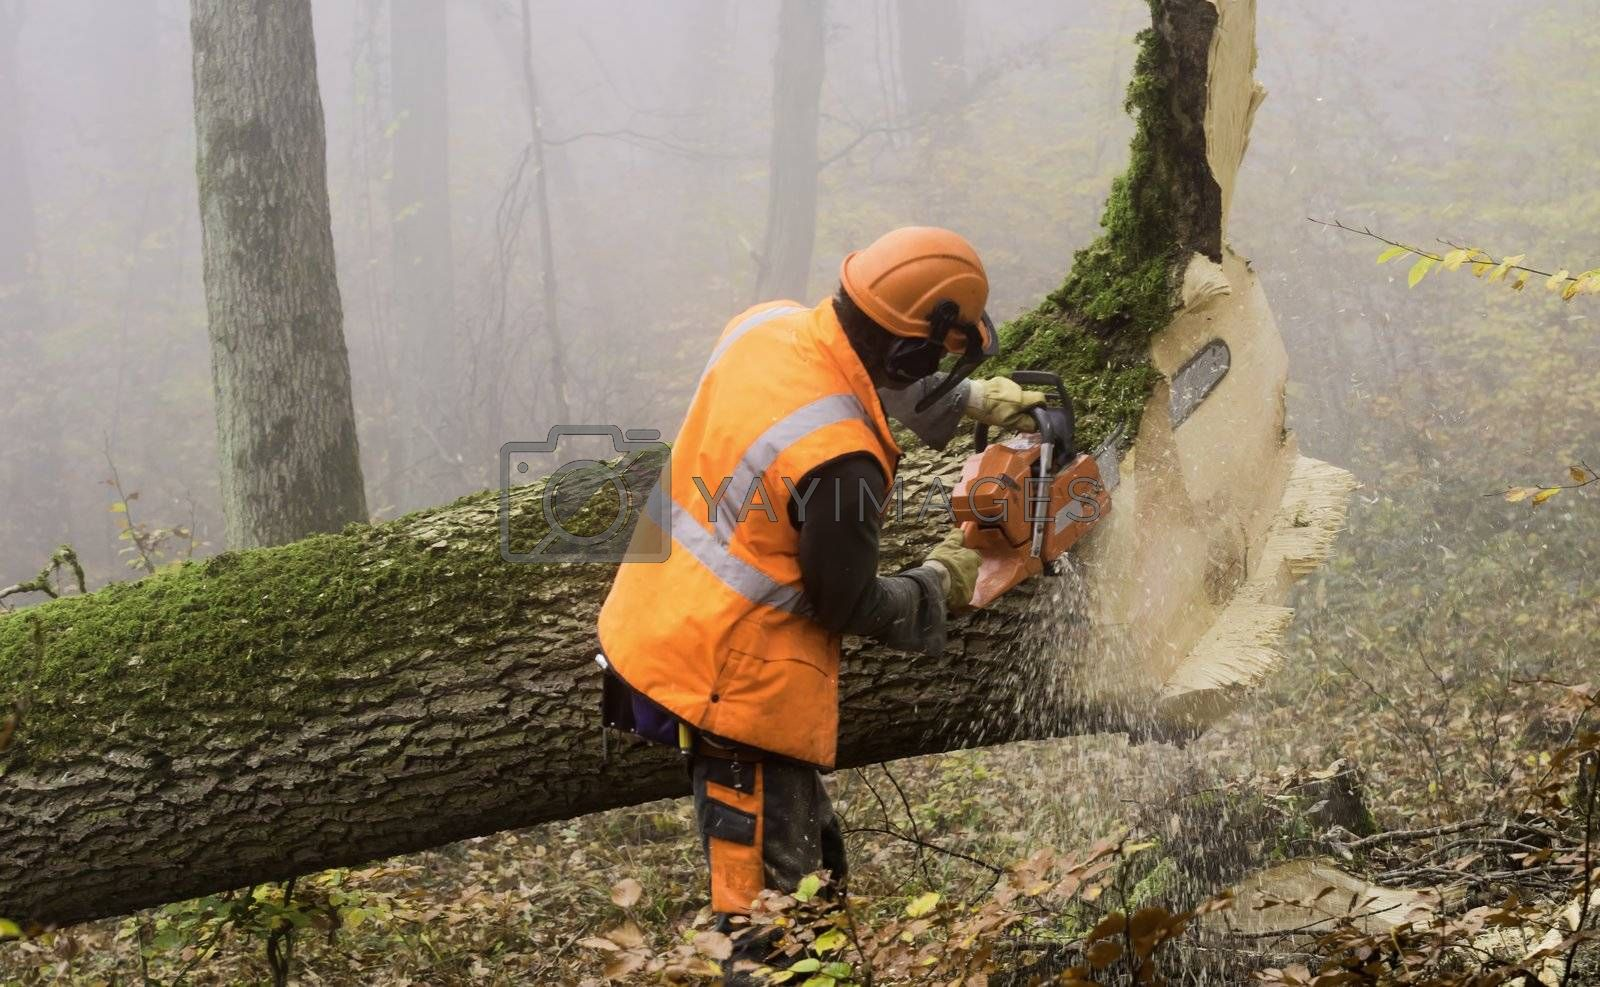 lumberjack at work in a misty forest